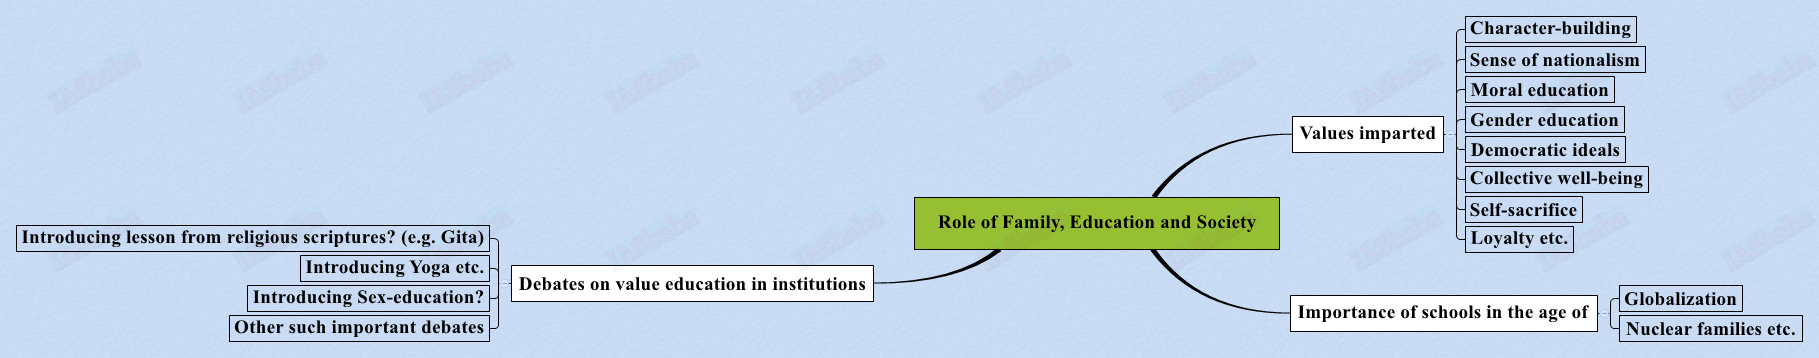 Role-of-Family-Education-and-Society